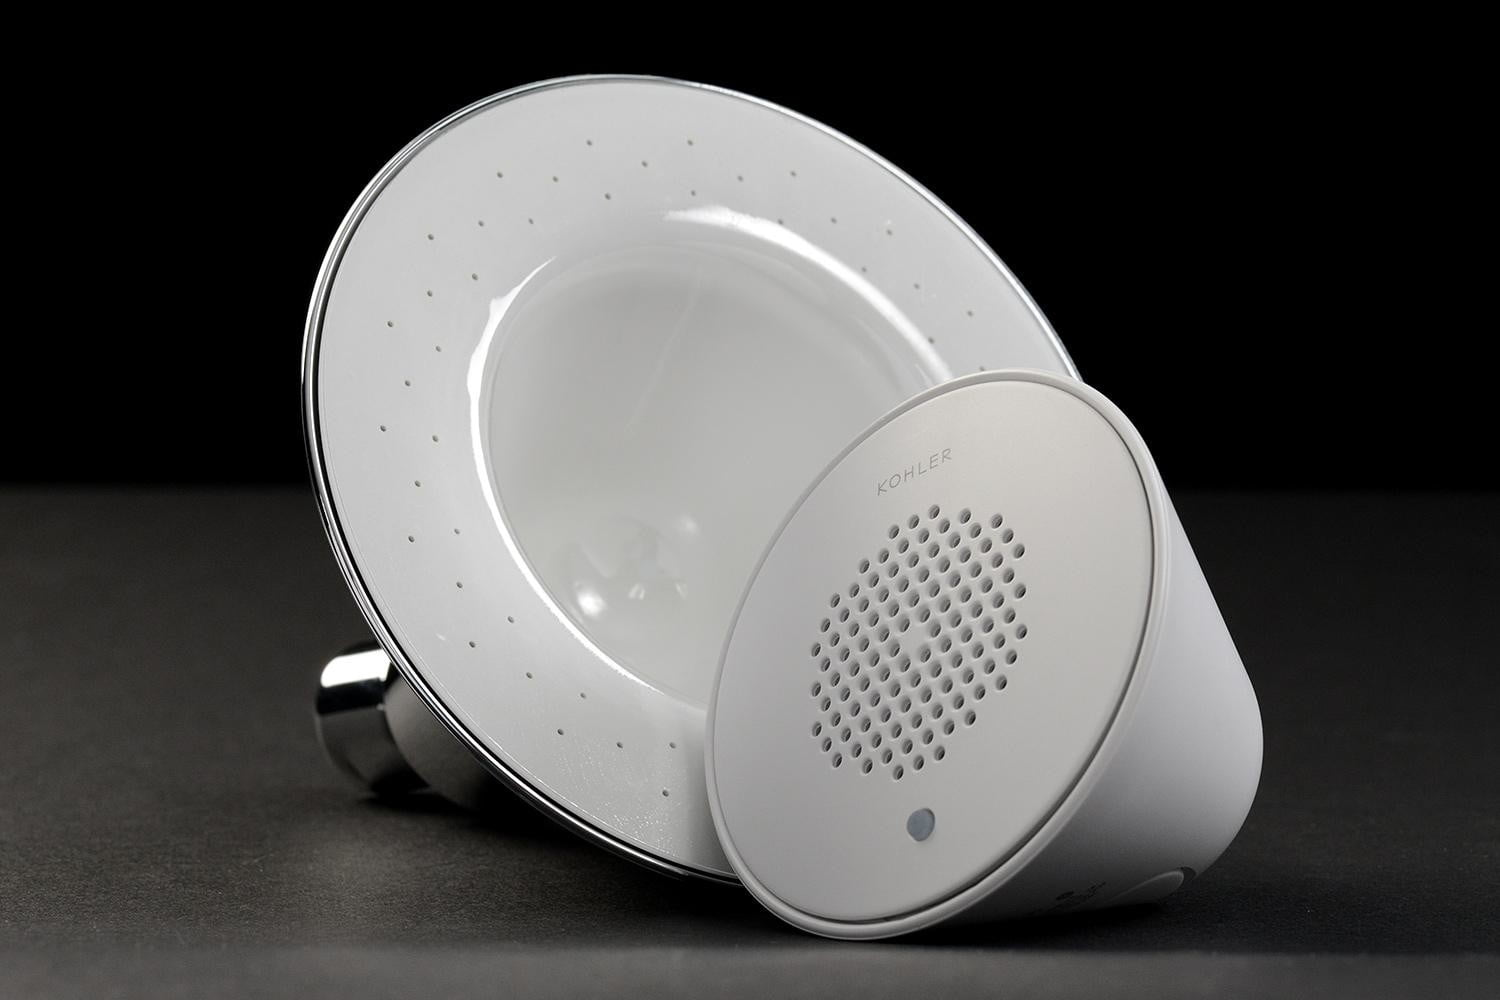 Kohler Moxie Showerhead Bluetooth Speaker Review Digital